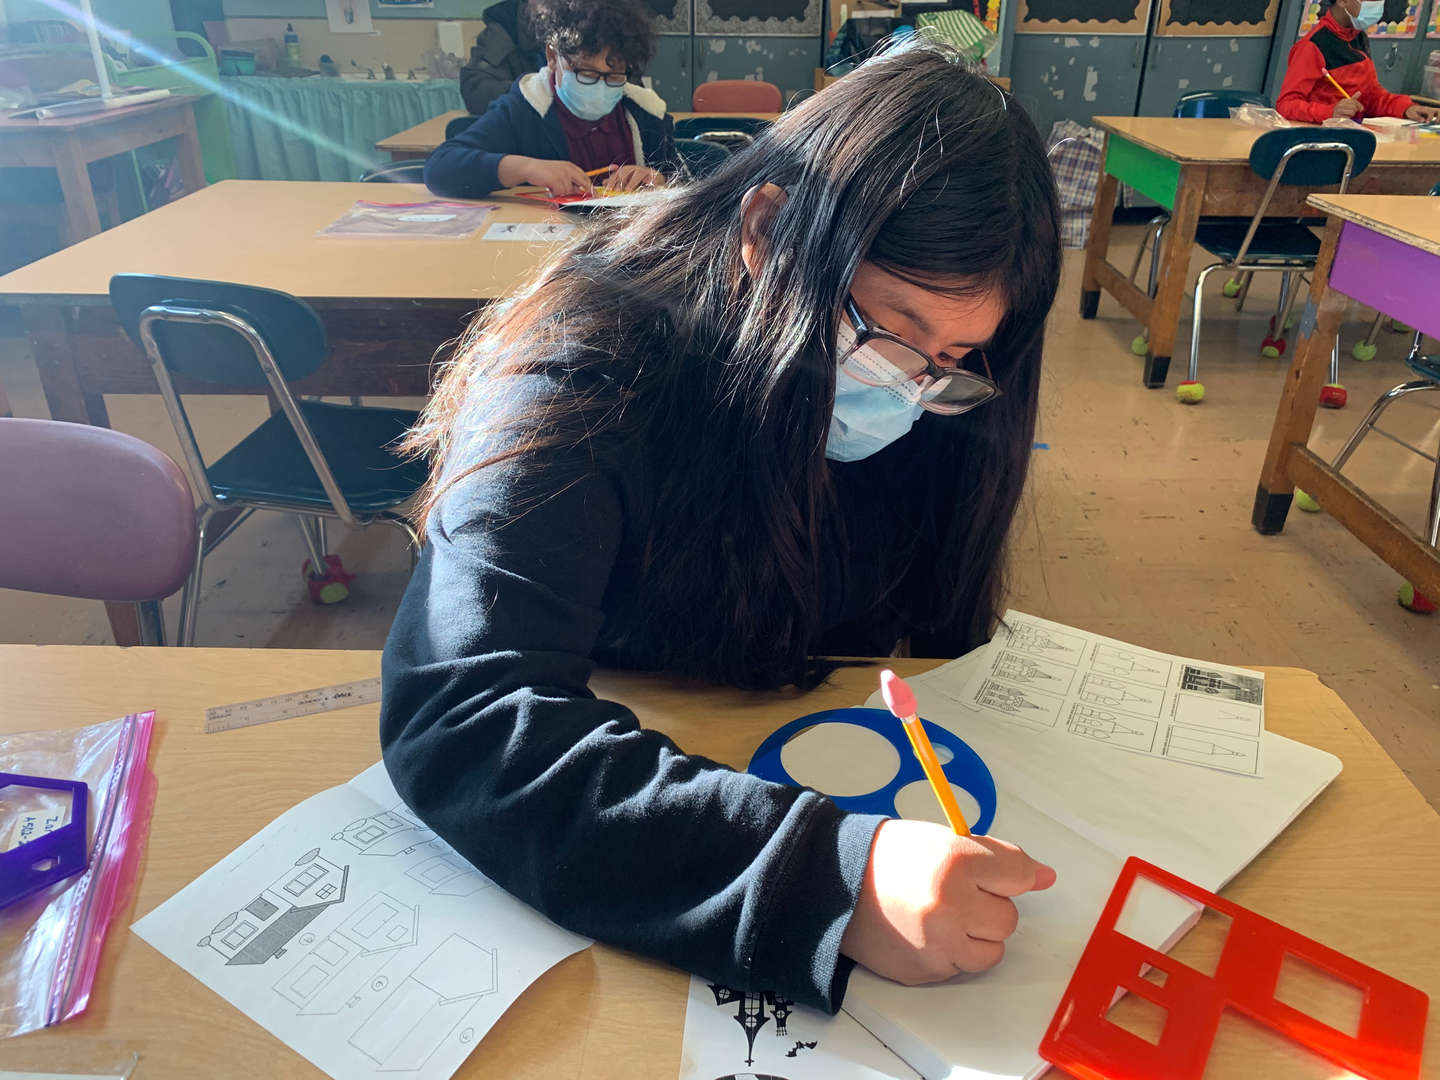 Girl wearing face mask uses drawing stencils